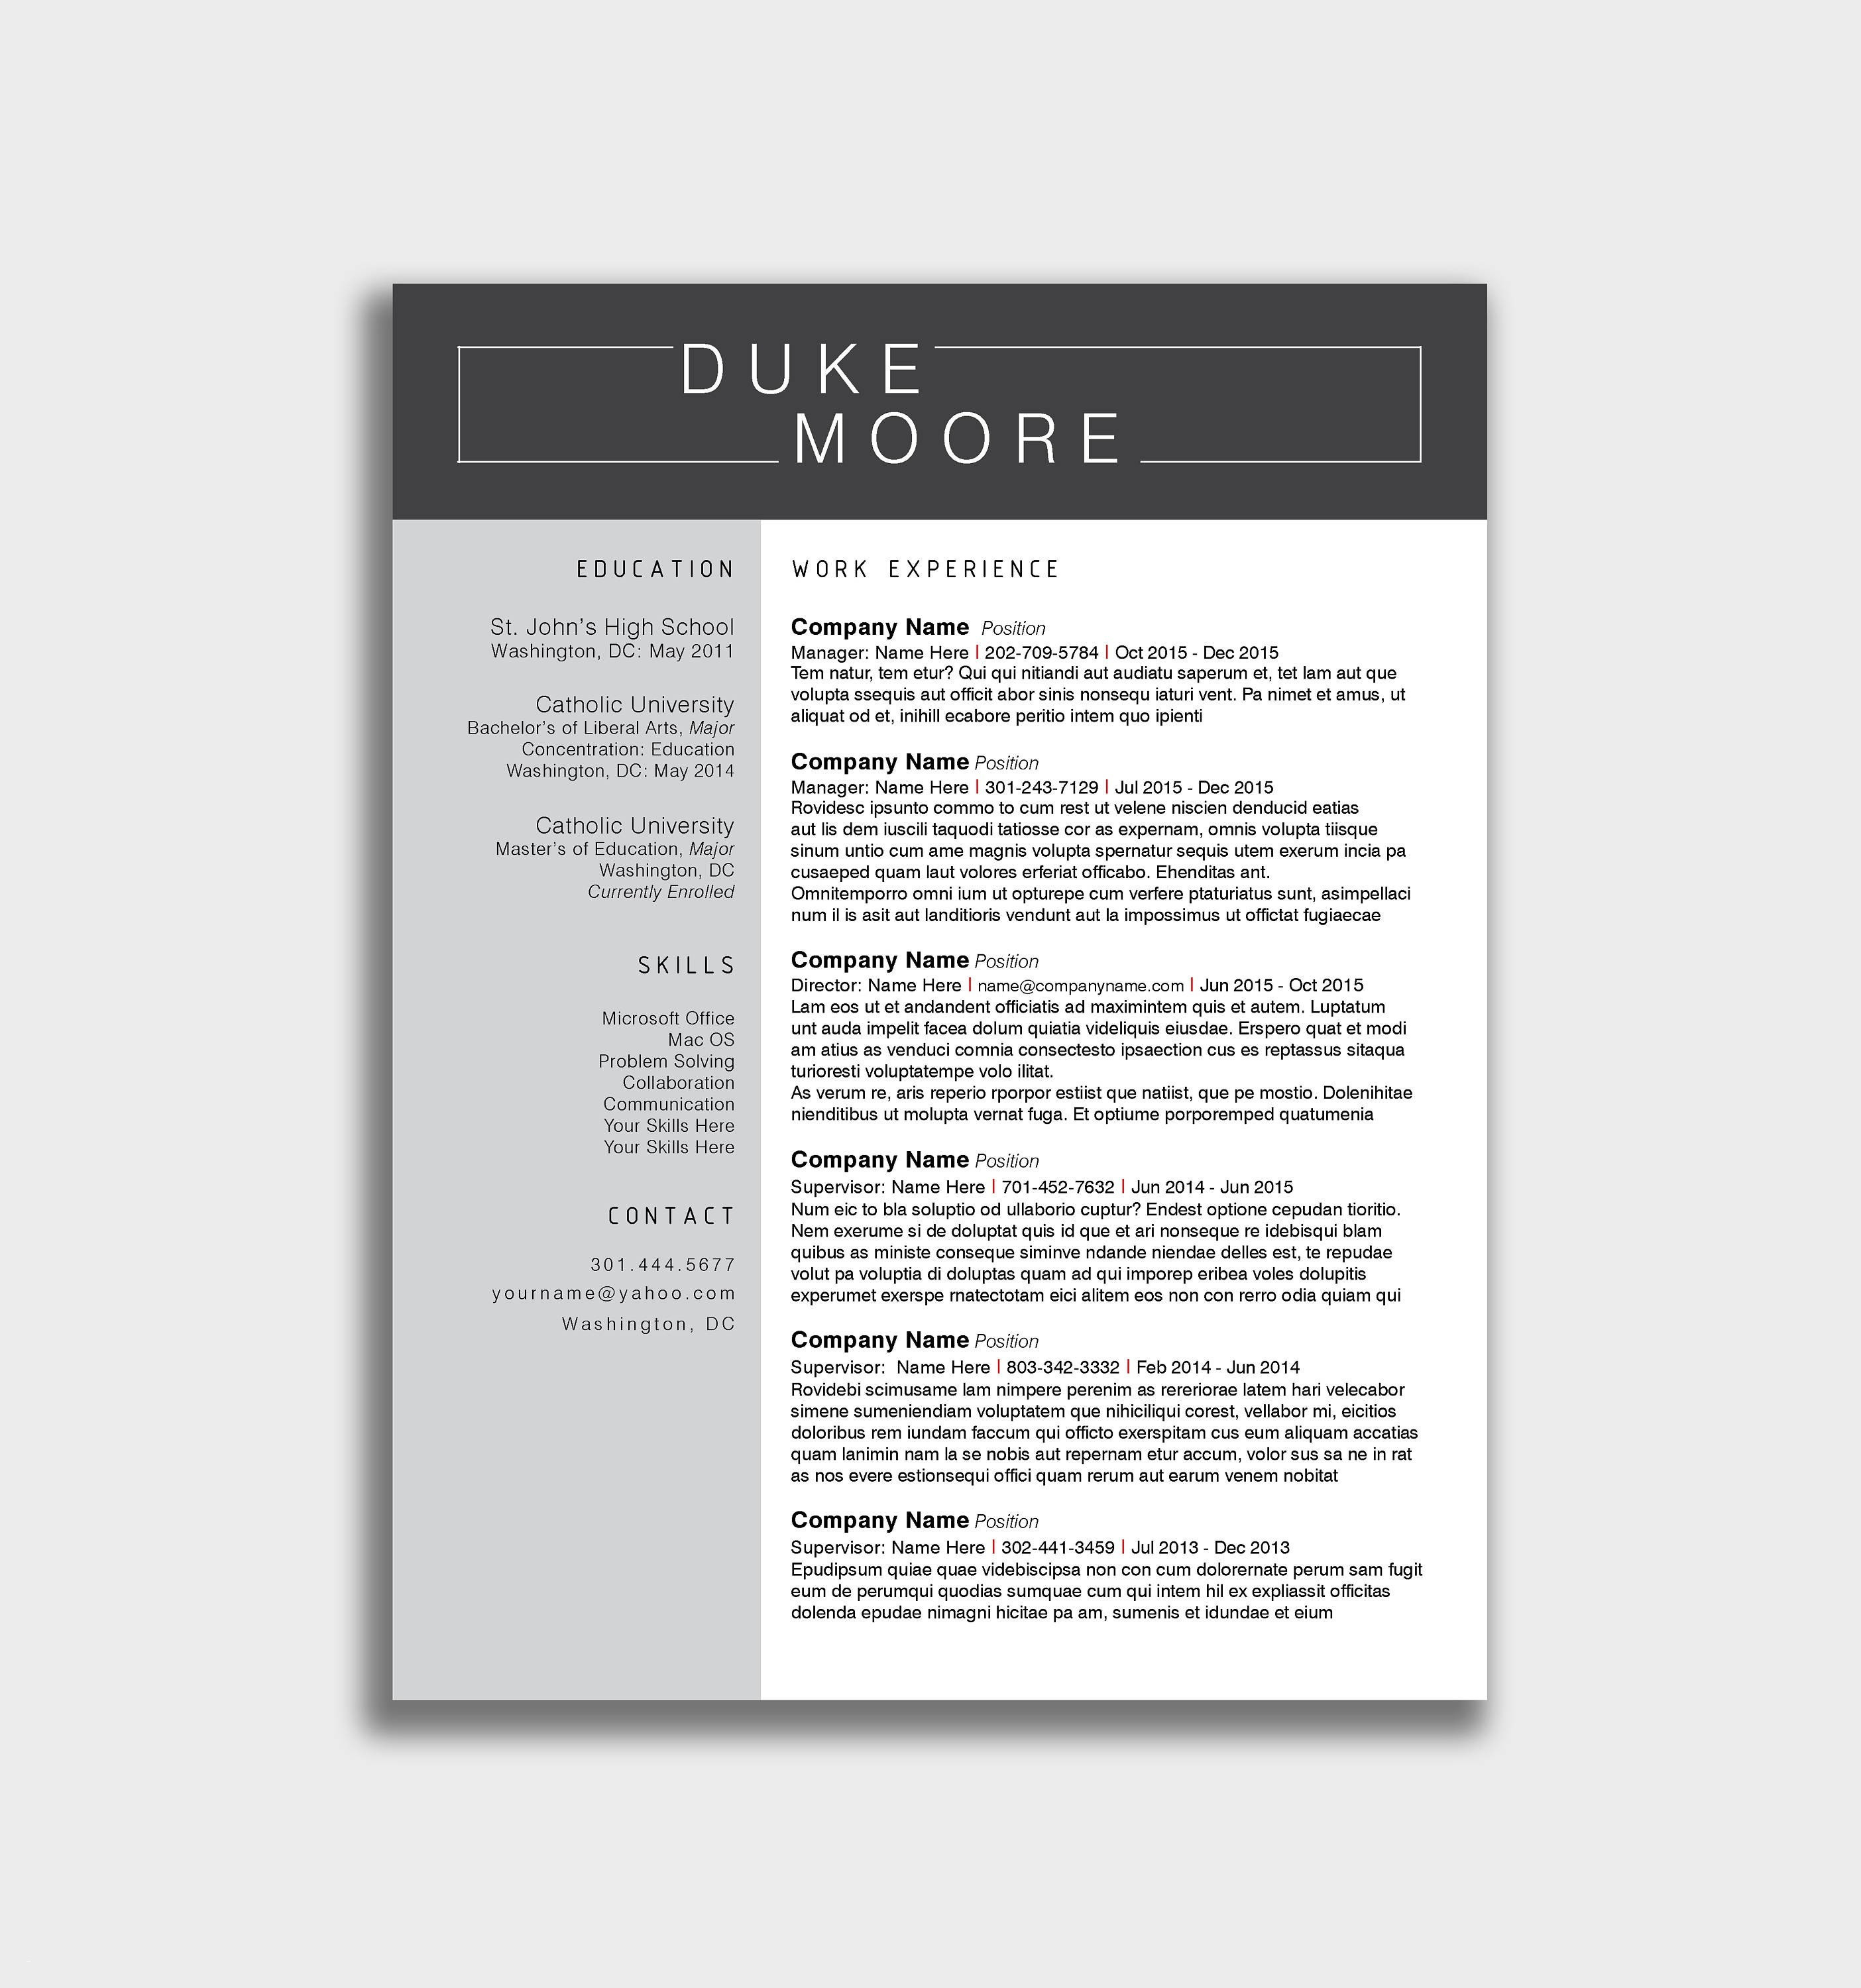 Utexas Mccombs Resume Template - 52 Loveable Resume Templates for College Students Occupylondonsos